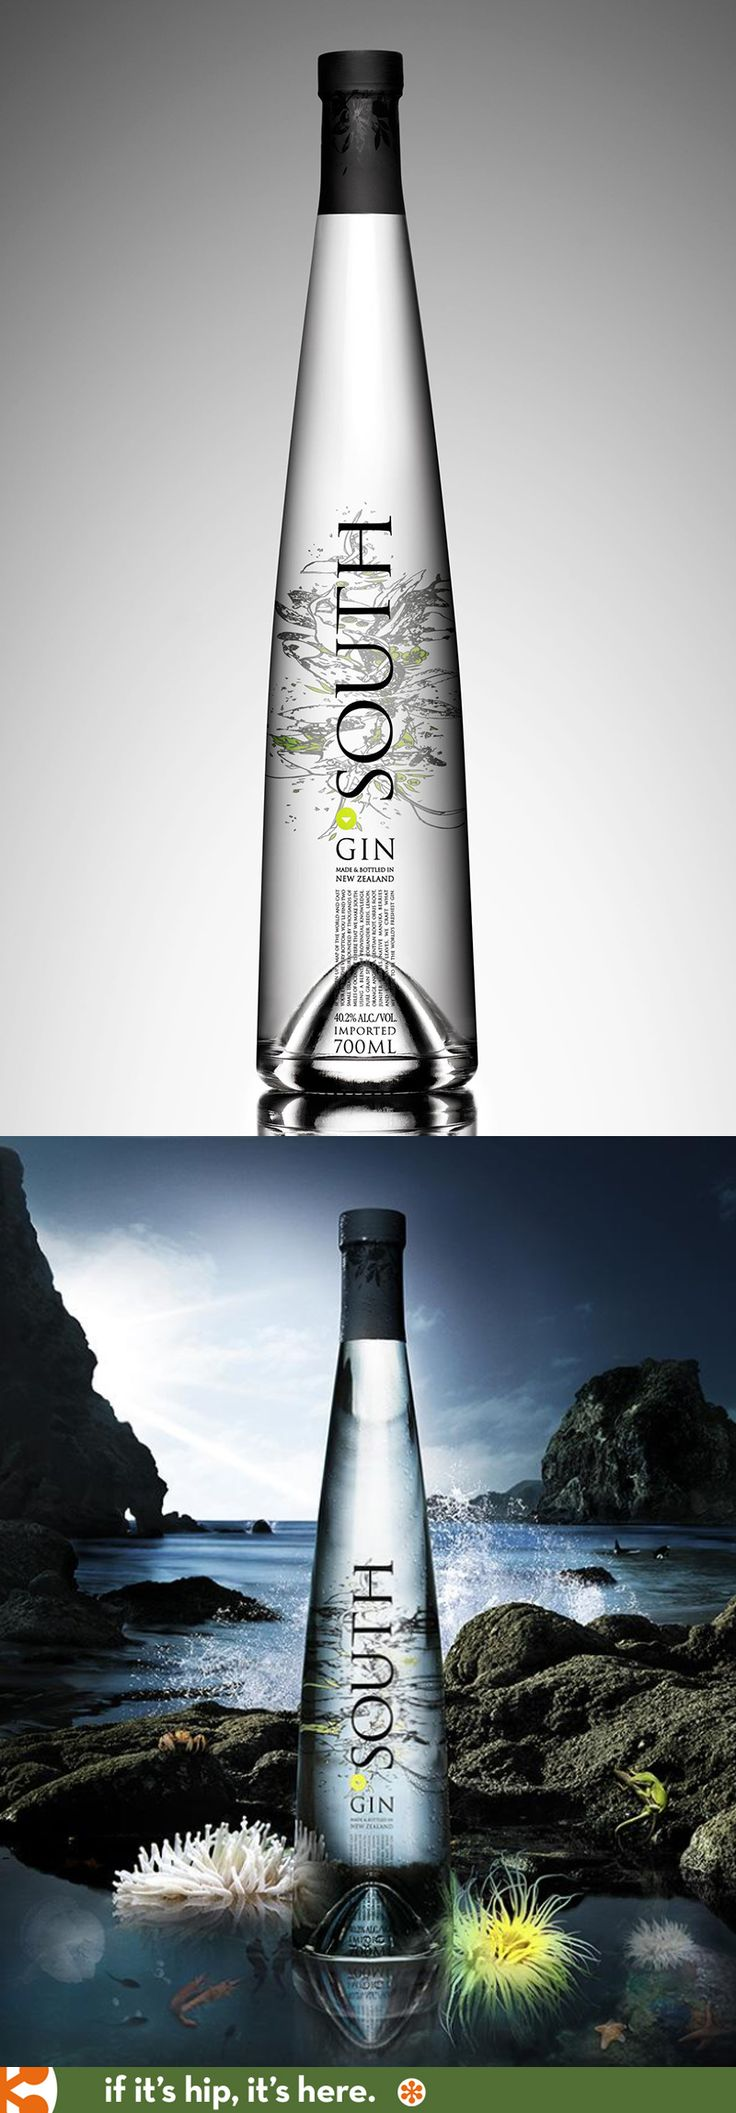 New Zealand's premium South Gin is in an award-winning bottle designed by One Design.